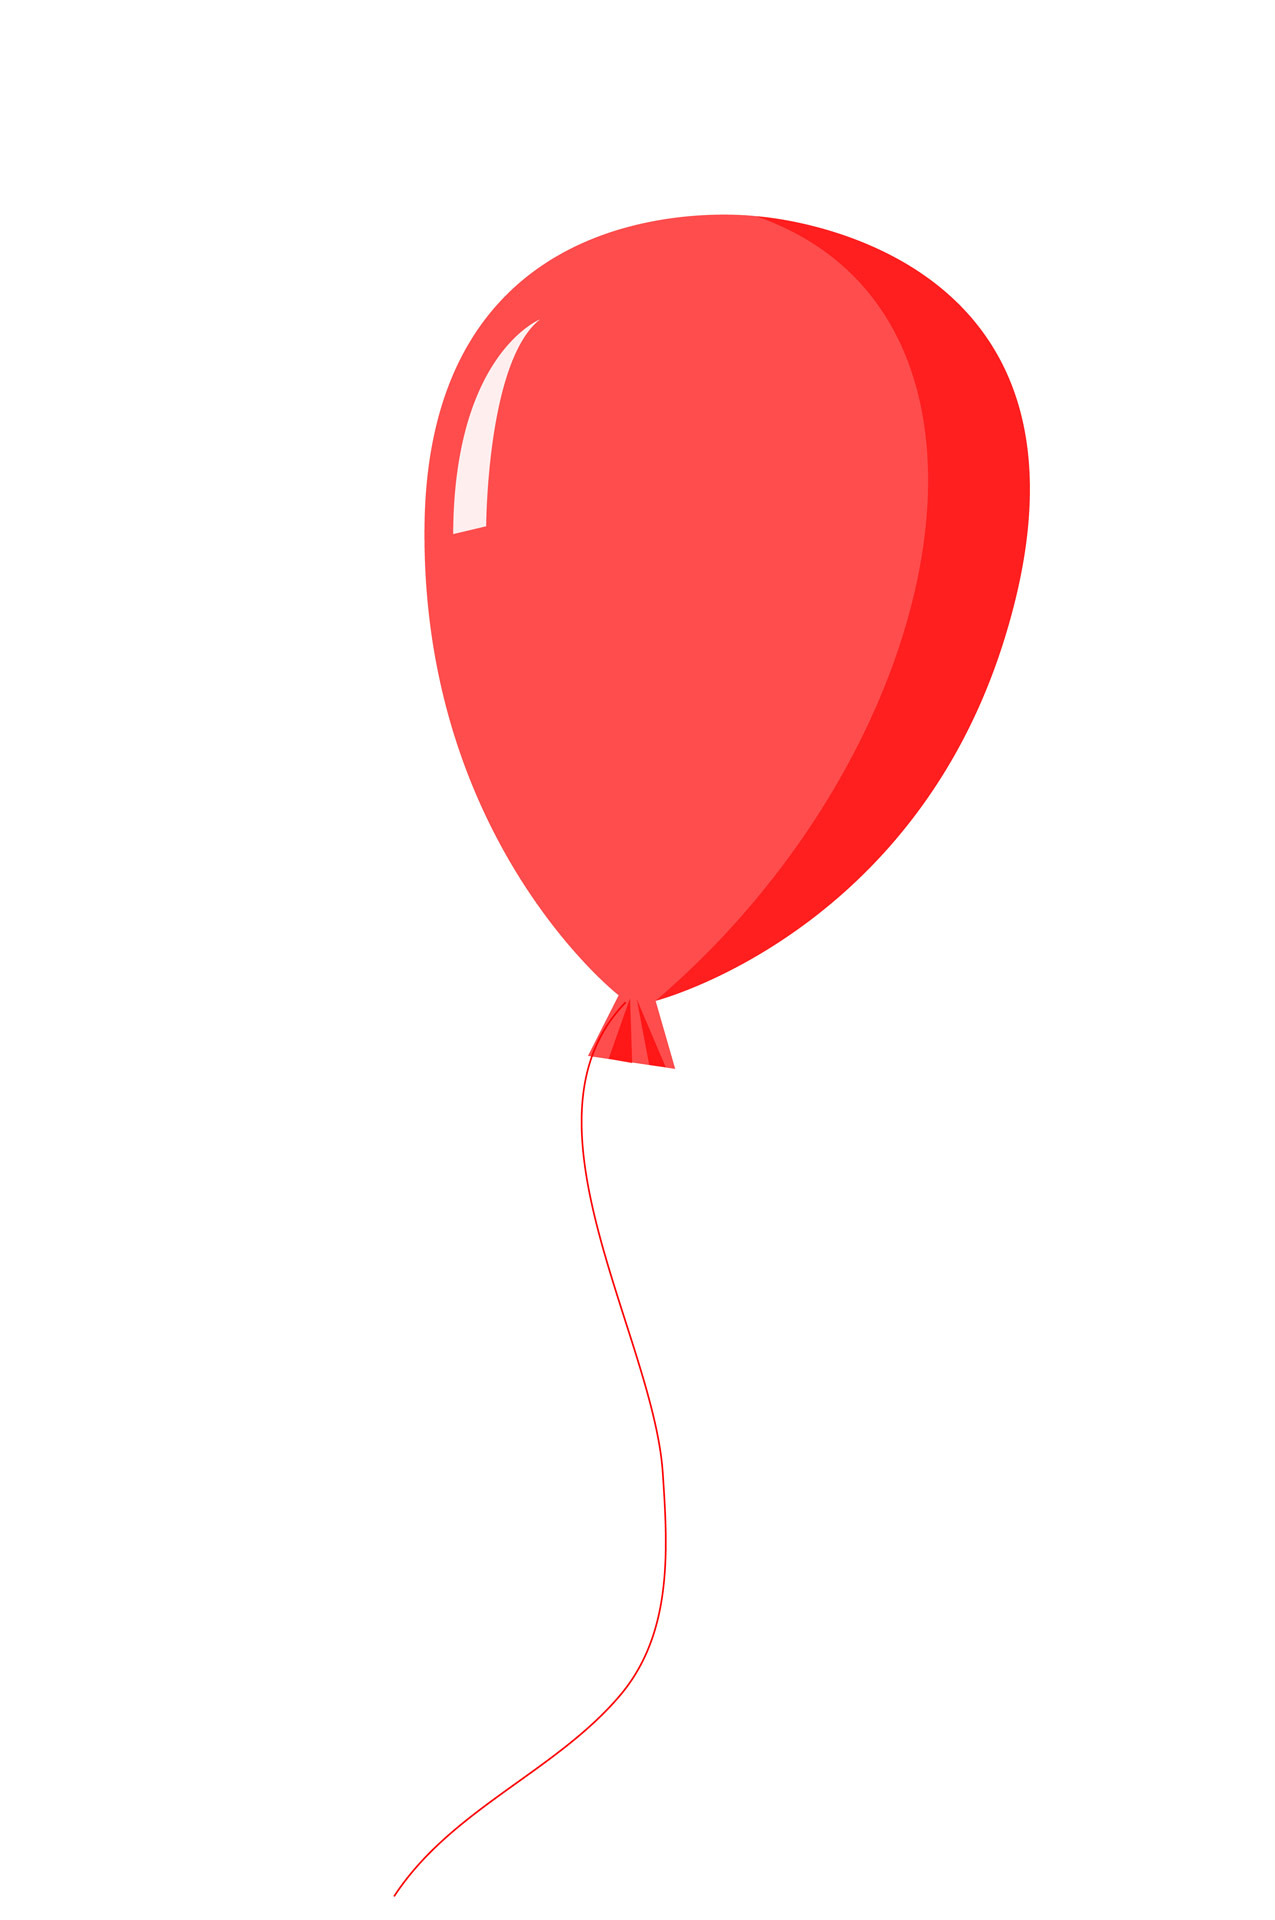 Red free stock photo. Clipart balloon